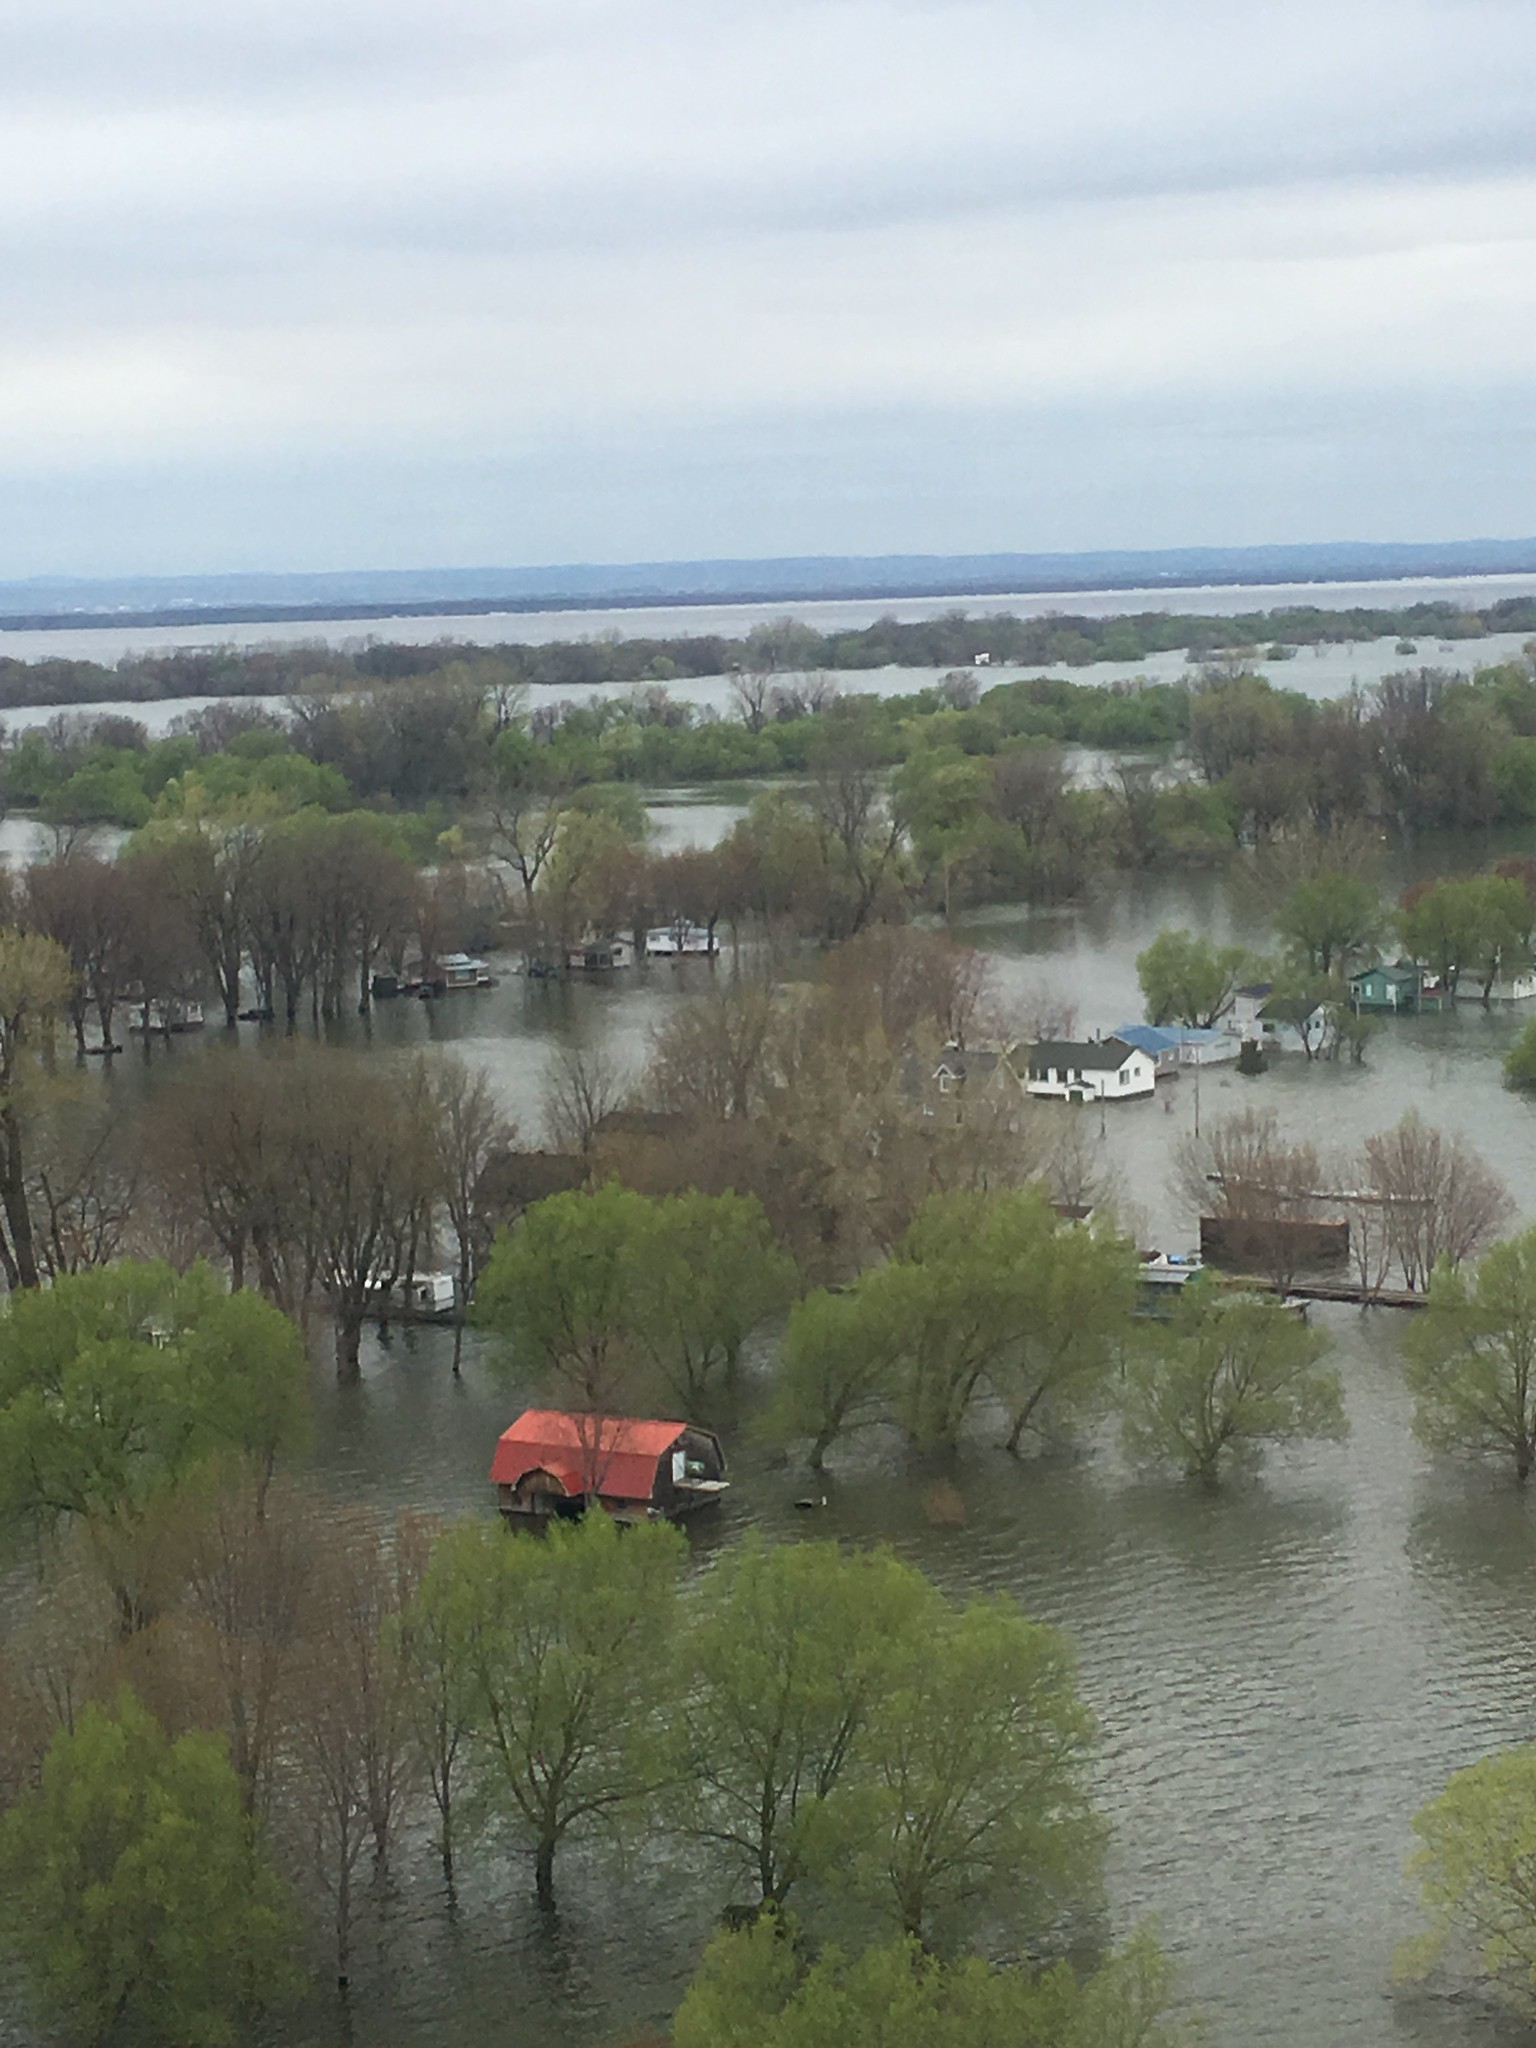 Flooding rivers were abundant along transects in 2019. Some of these houses were not quite high enough to avoid flooding. Photo: Garrett Wilkerson, USFWS